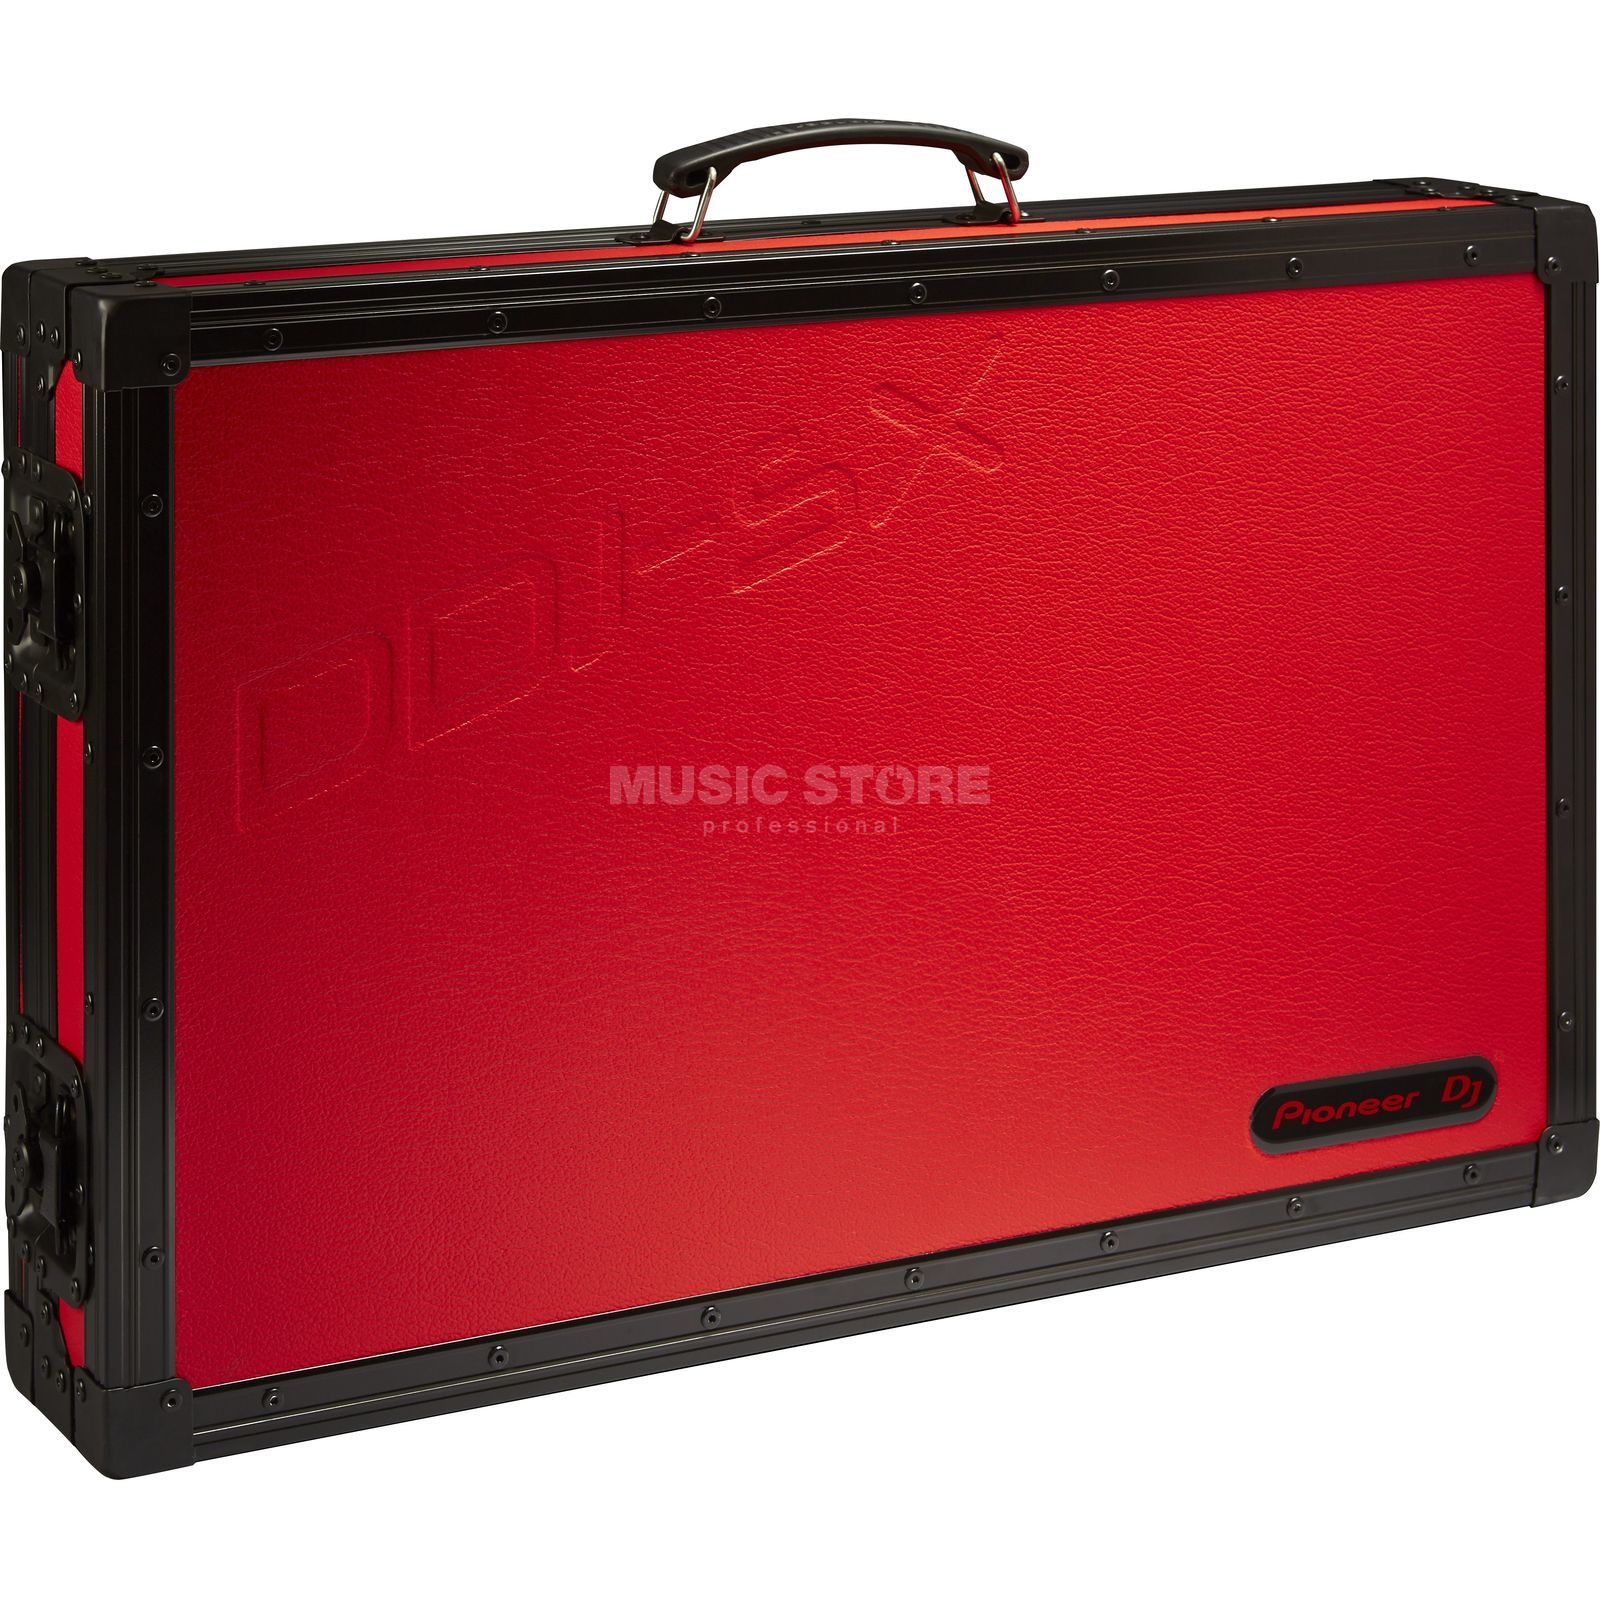 Pioneer PRO-DDJSXFLT Case for DDJ-SX with Laptop Mount Produktbillede